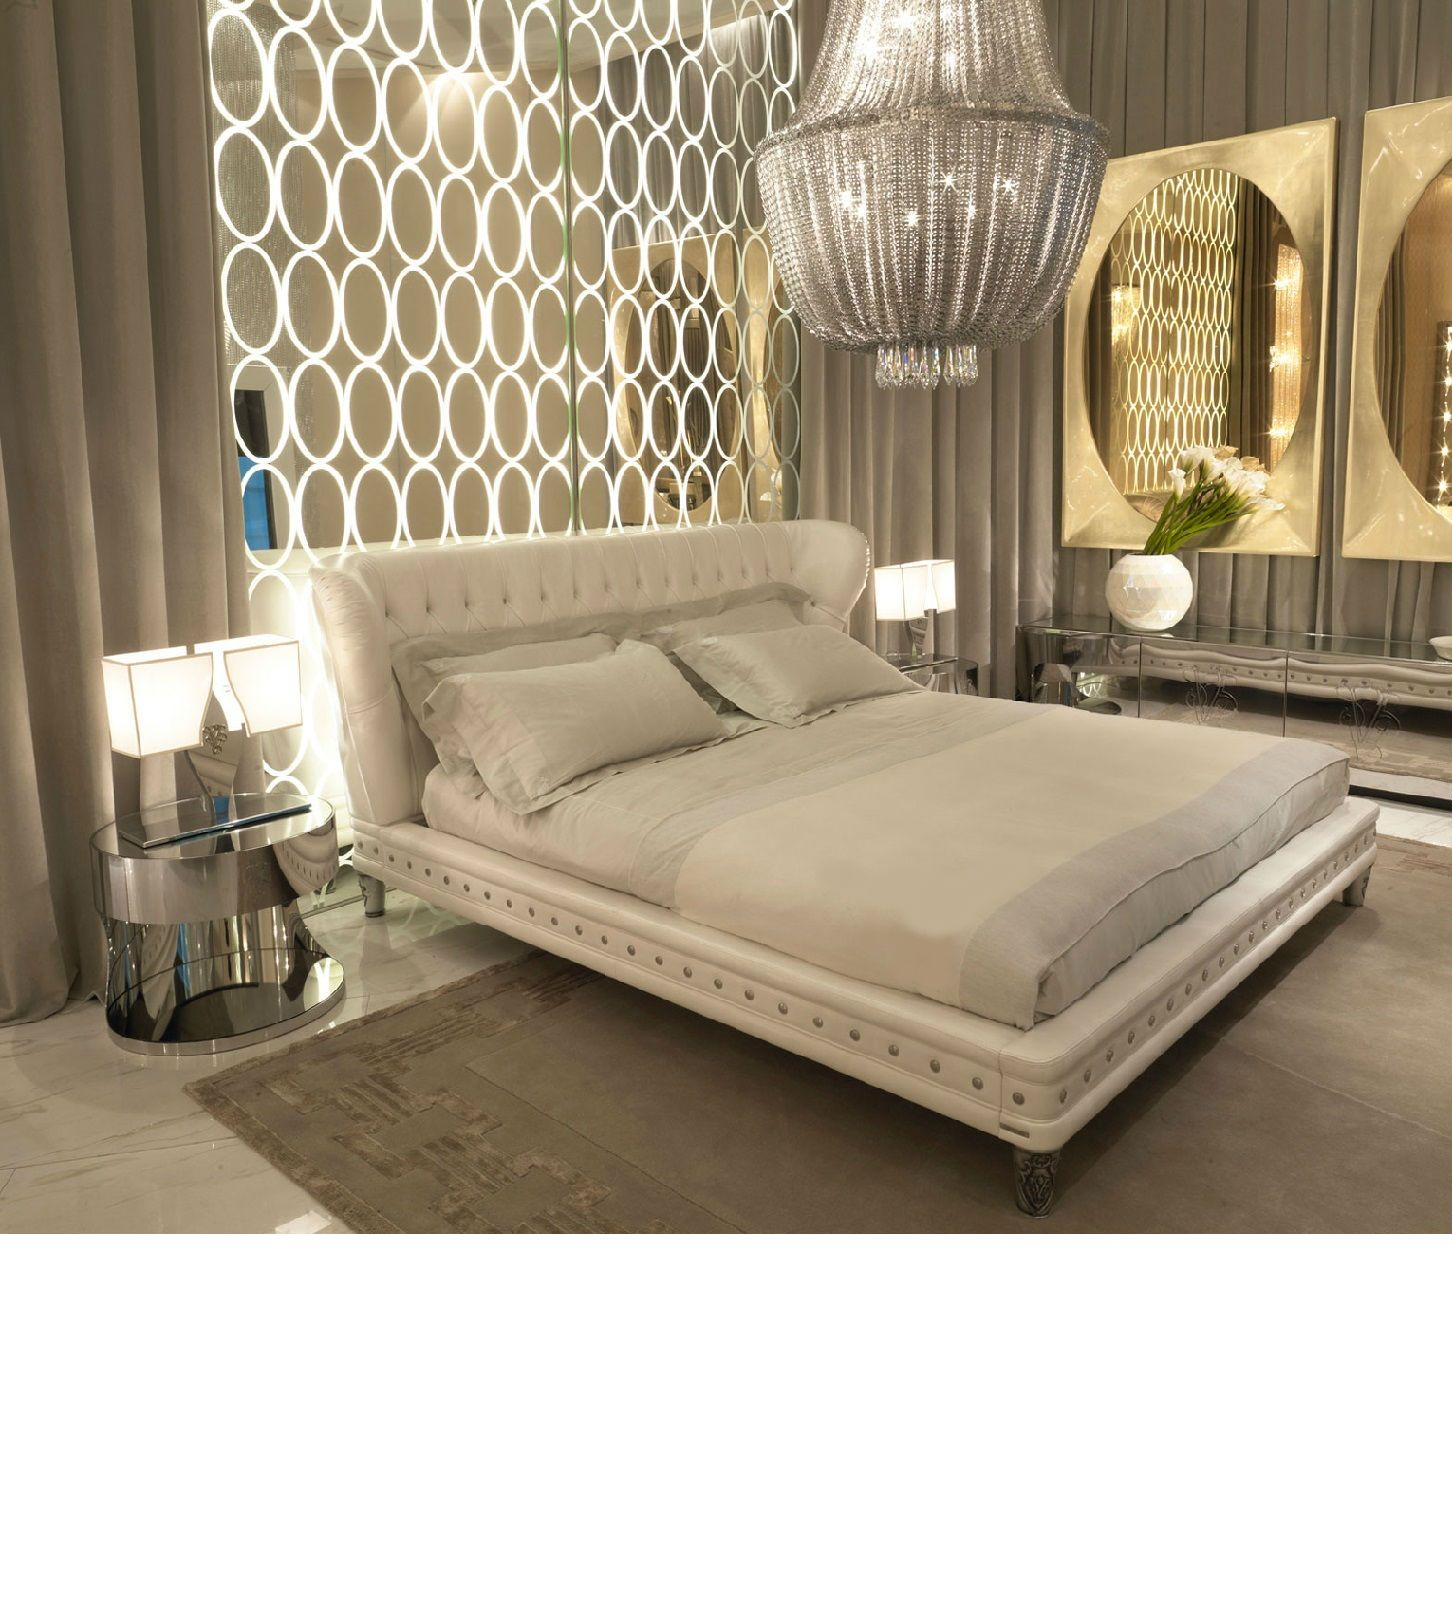 Hotel Decoration Design Luxury Bedroom Interior Design Inspiring 5 Star Hotel